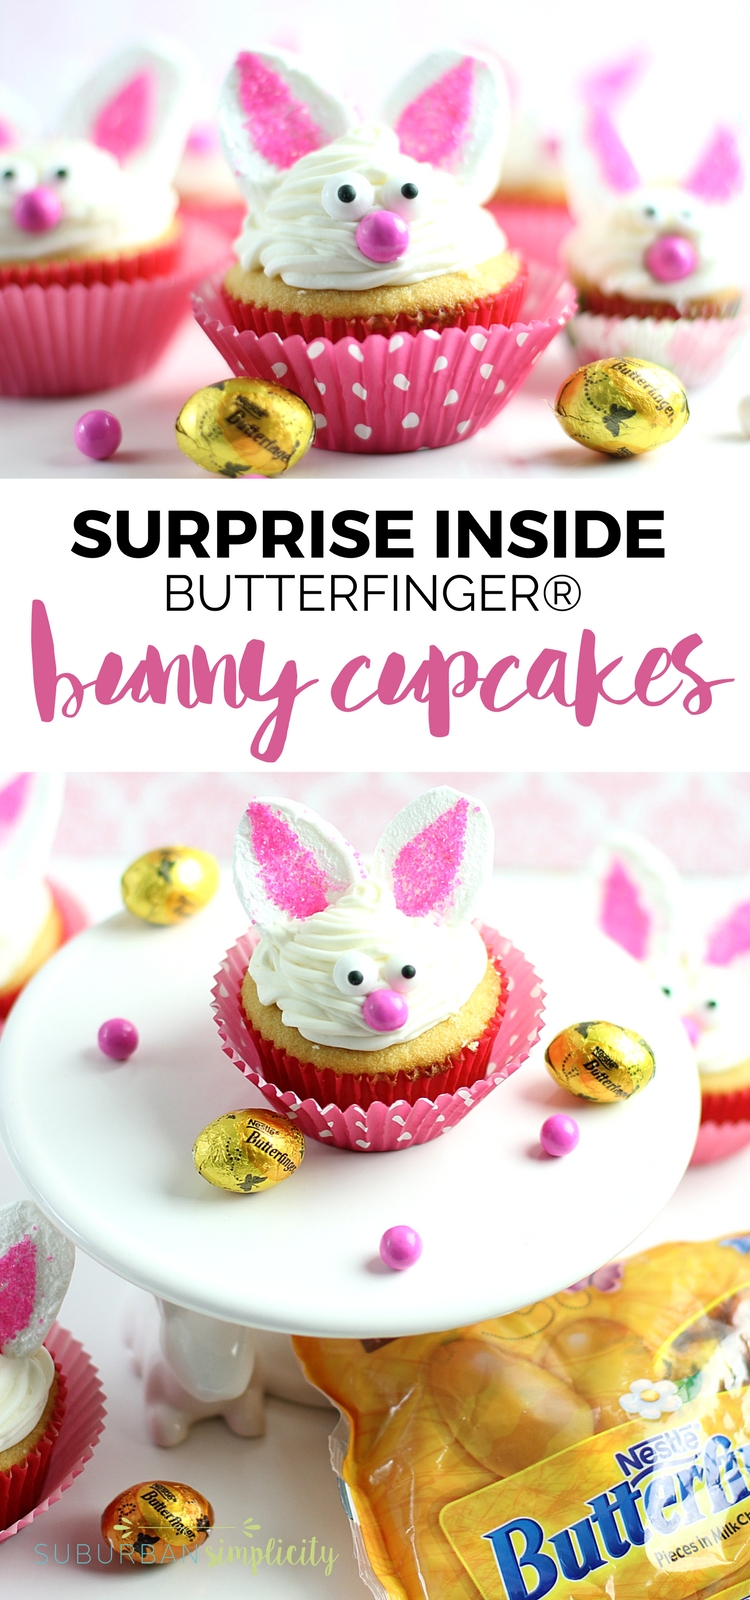 Bunny Cupcakes with a BUTTERFINGER® Surprise Inside are what you need to make this Easter! Adorable, easy and fun and the perfect dessert idea for any spring party or gathering. Plus, there's a yummy surprise waiting inside!